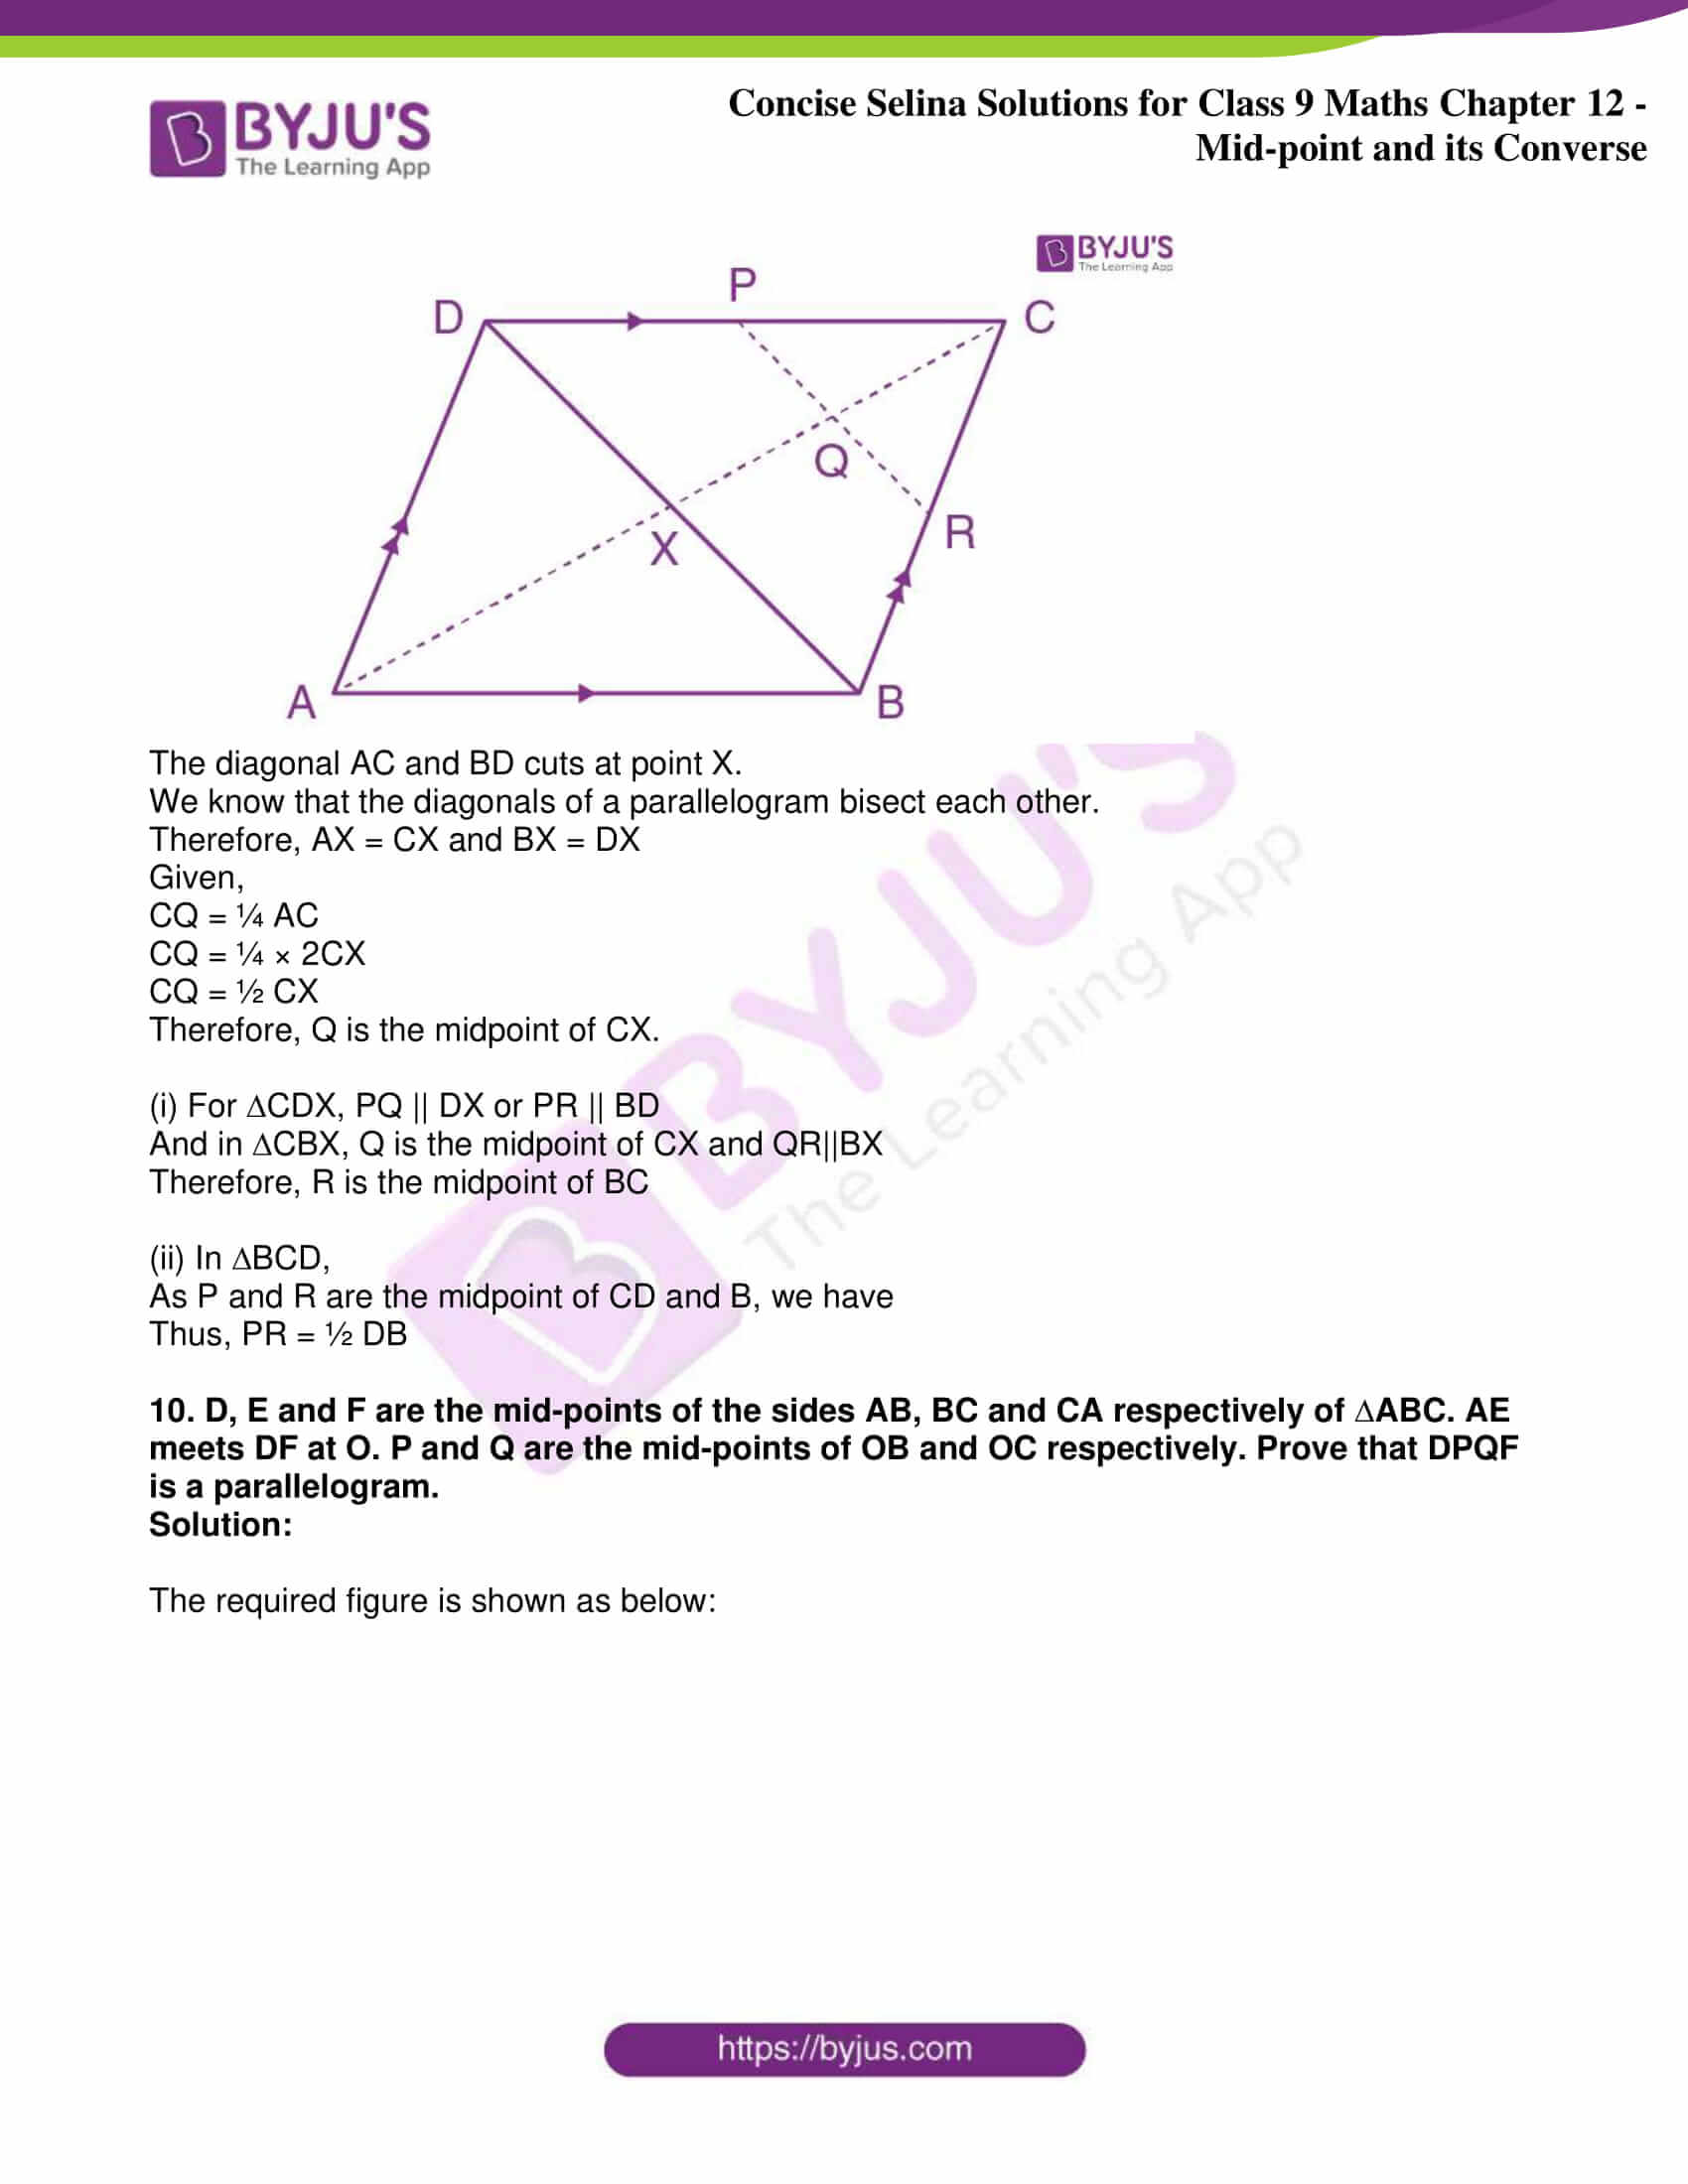 icse class 9 jun8 maths selina solutions chapter 12 midpoint and its converse 08